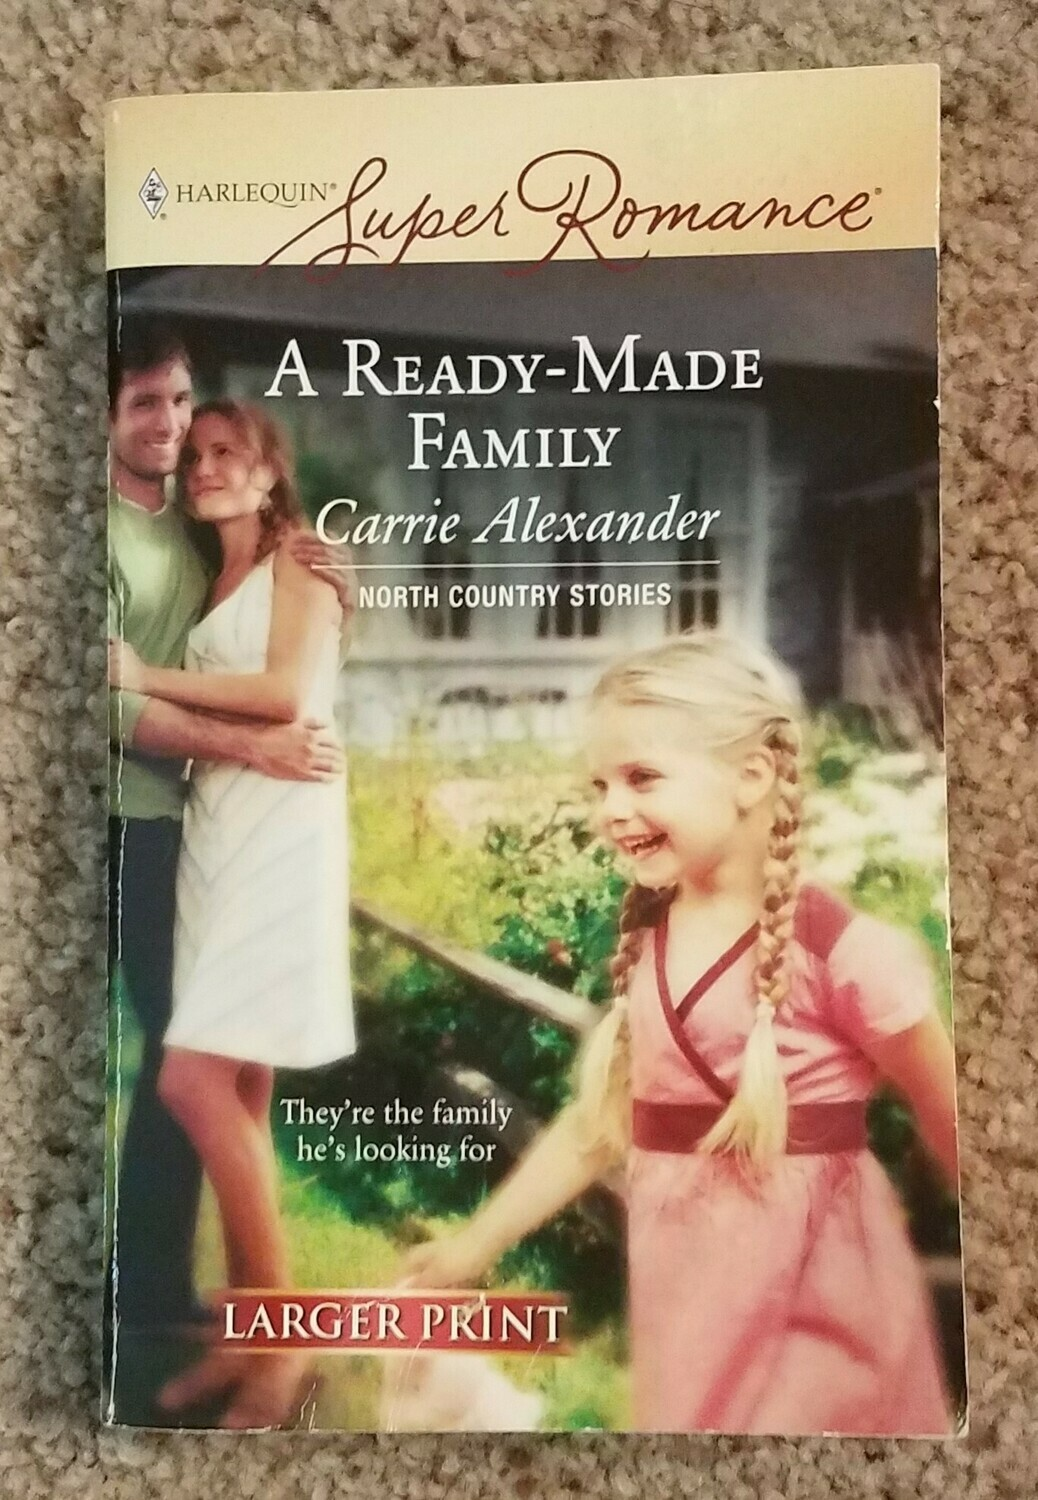 A Ready-Made Family by Carrie Alexander